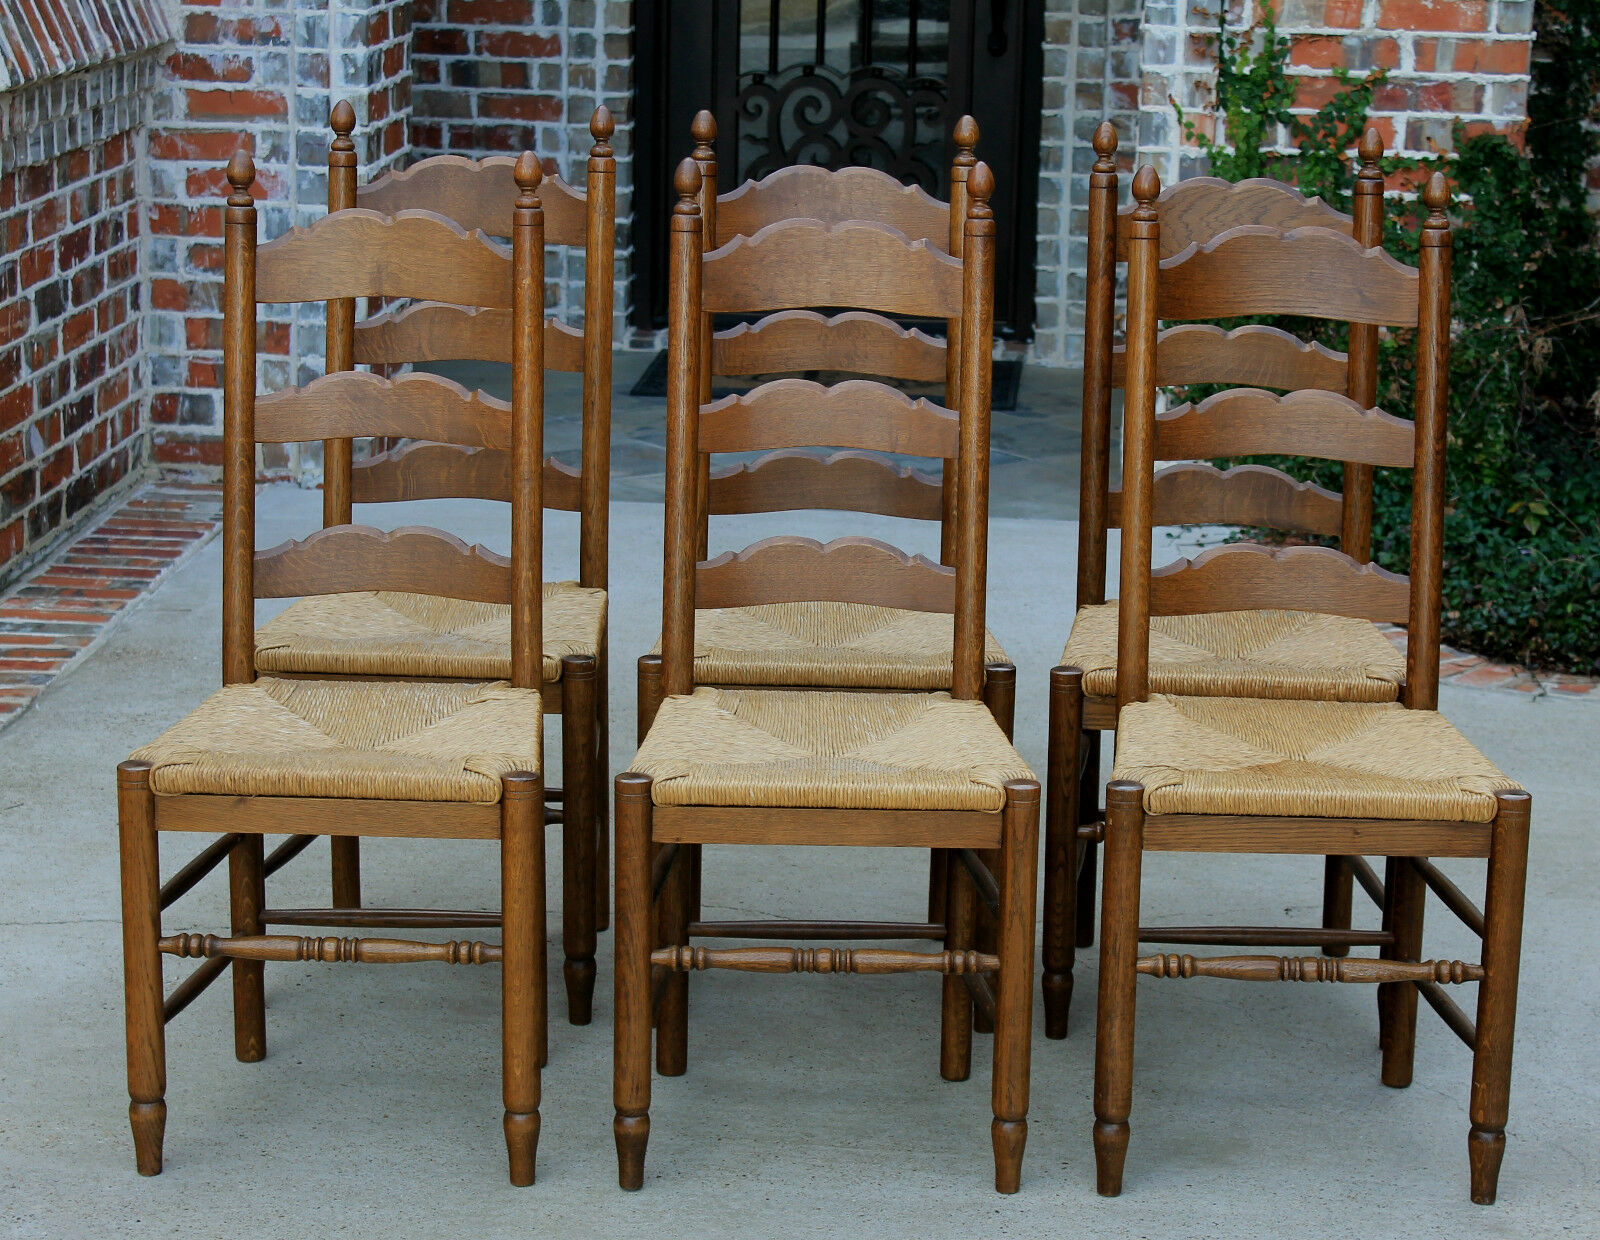 oak farmhouse chairs mini jazzy power chair batteries antique french country set 6 farm table